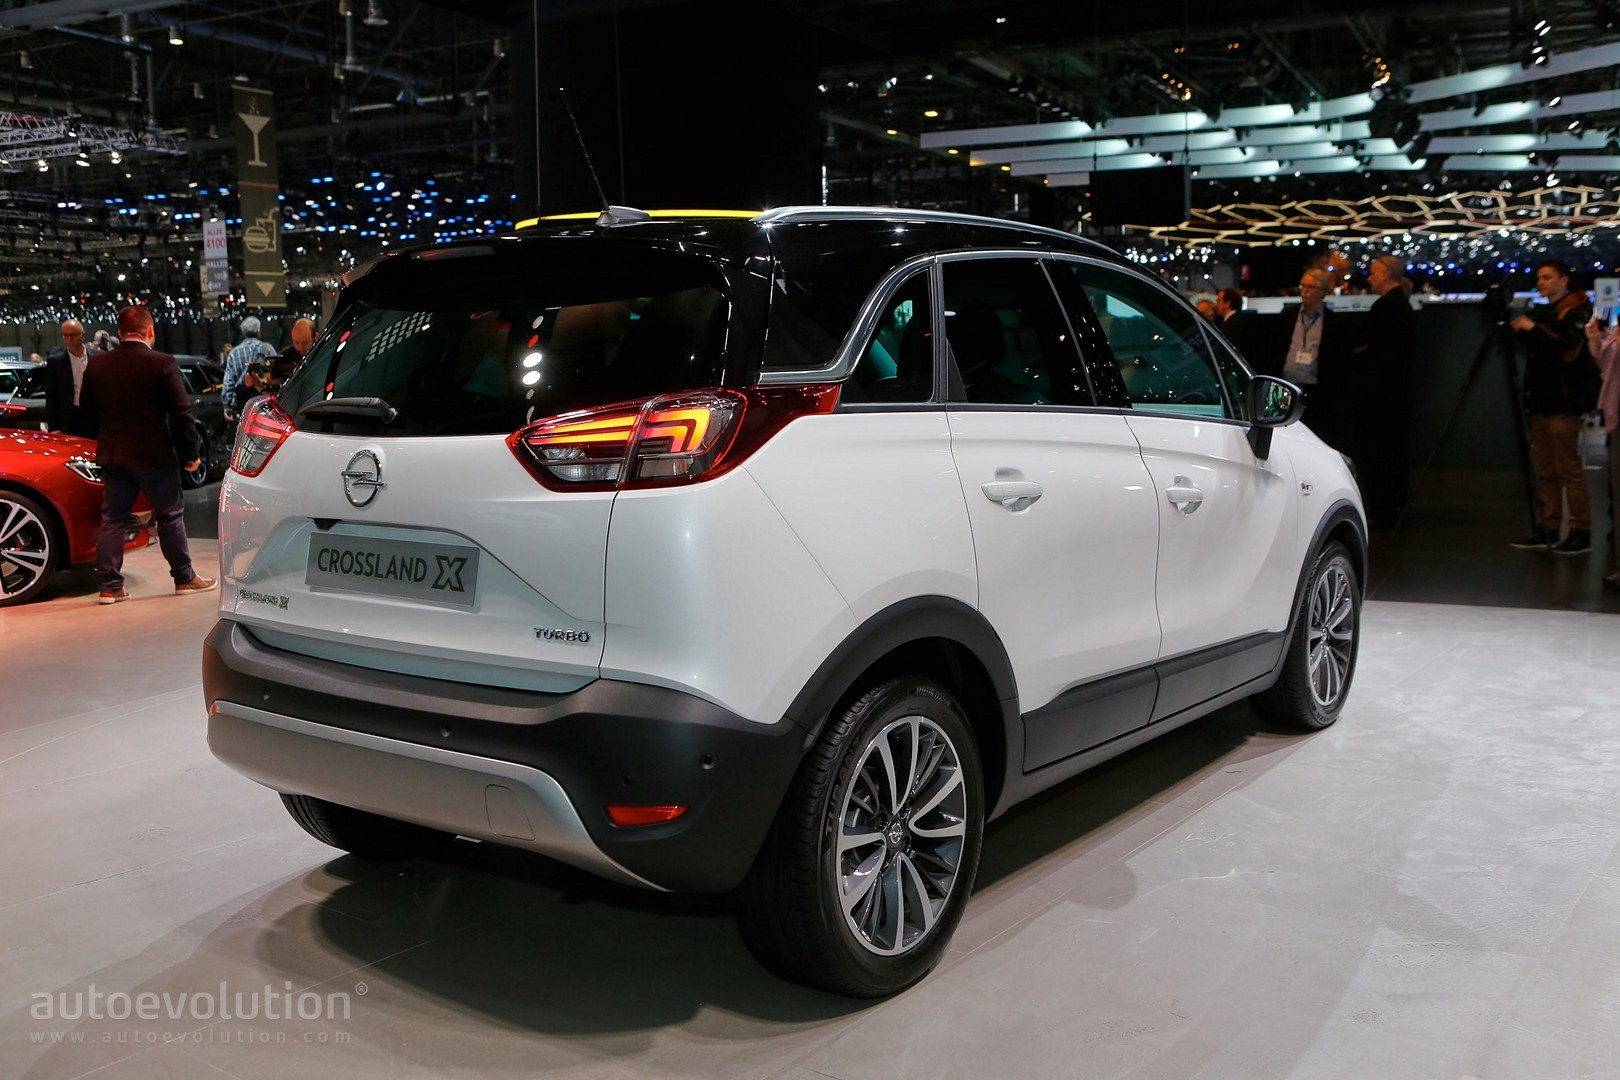 opel crossland x is now a peugeot in geneva autoevolution. Black Bedroom Furniture Sets. Home Design Ideas